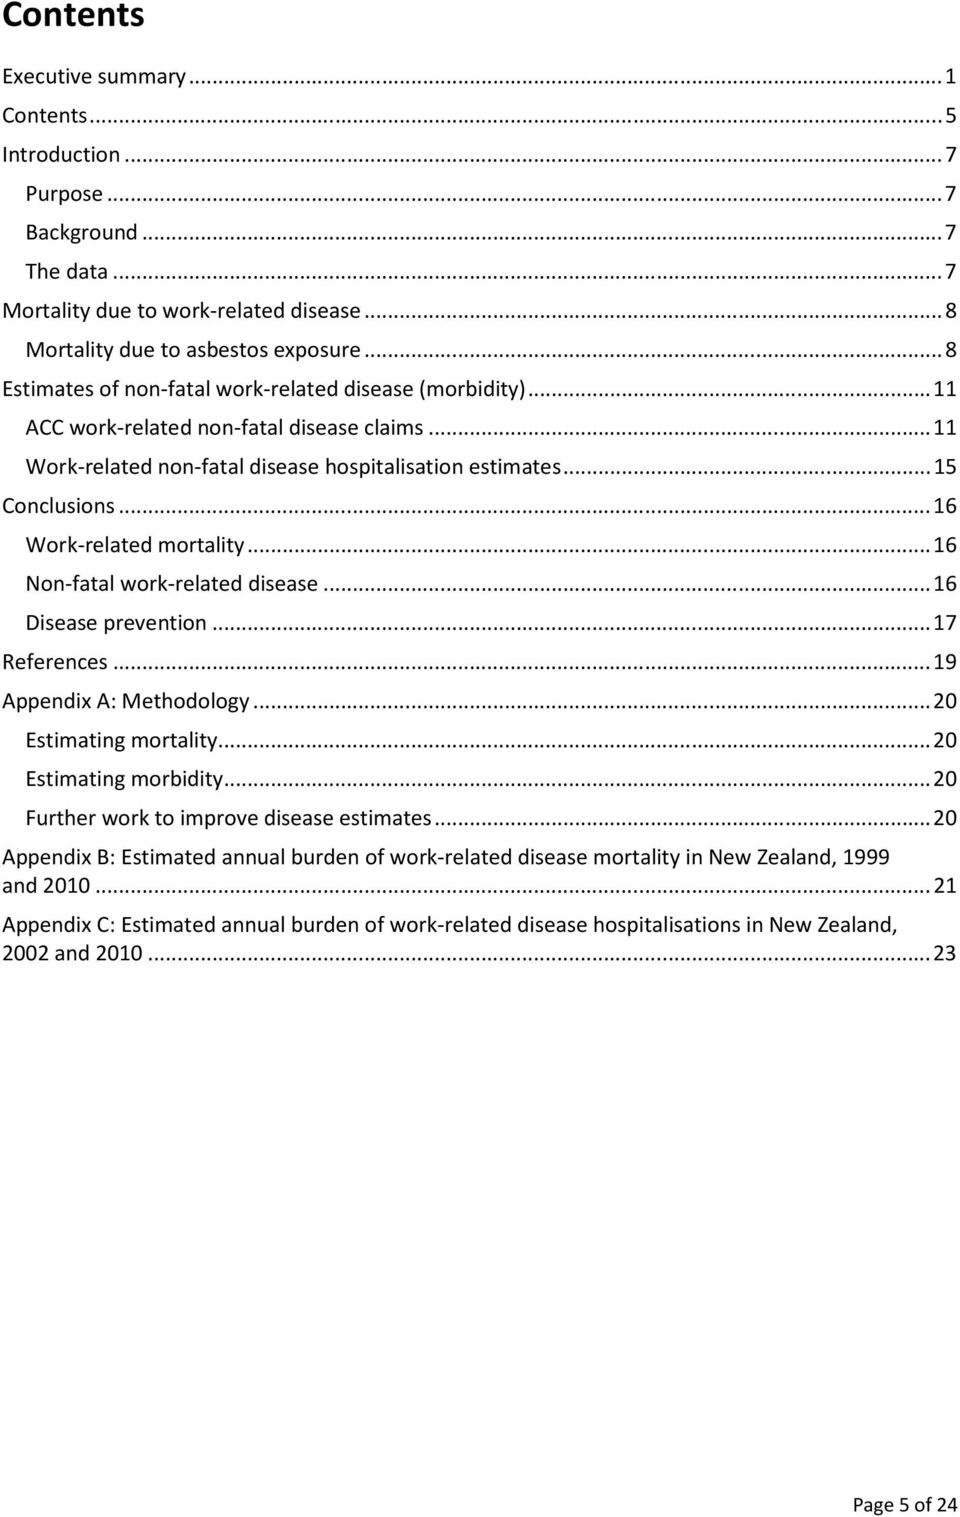 .. 16 Work-related mortality... 16 Non-fatal work-related disease... 16 Disease prevention... 17 References... 19 Appendix A: Methodology... 20 Estimating mortality... 20 Estimating morbidity.